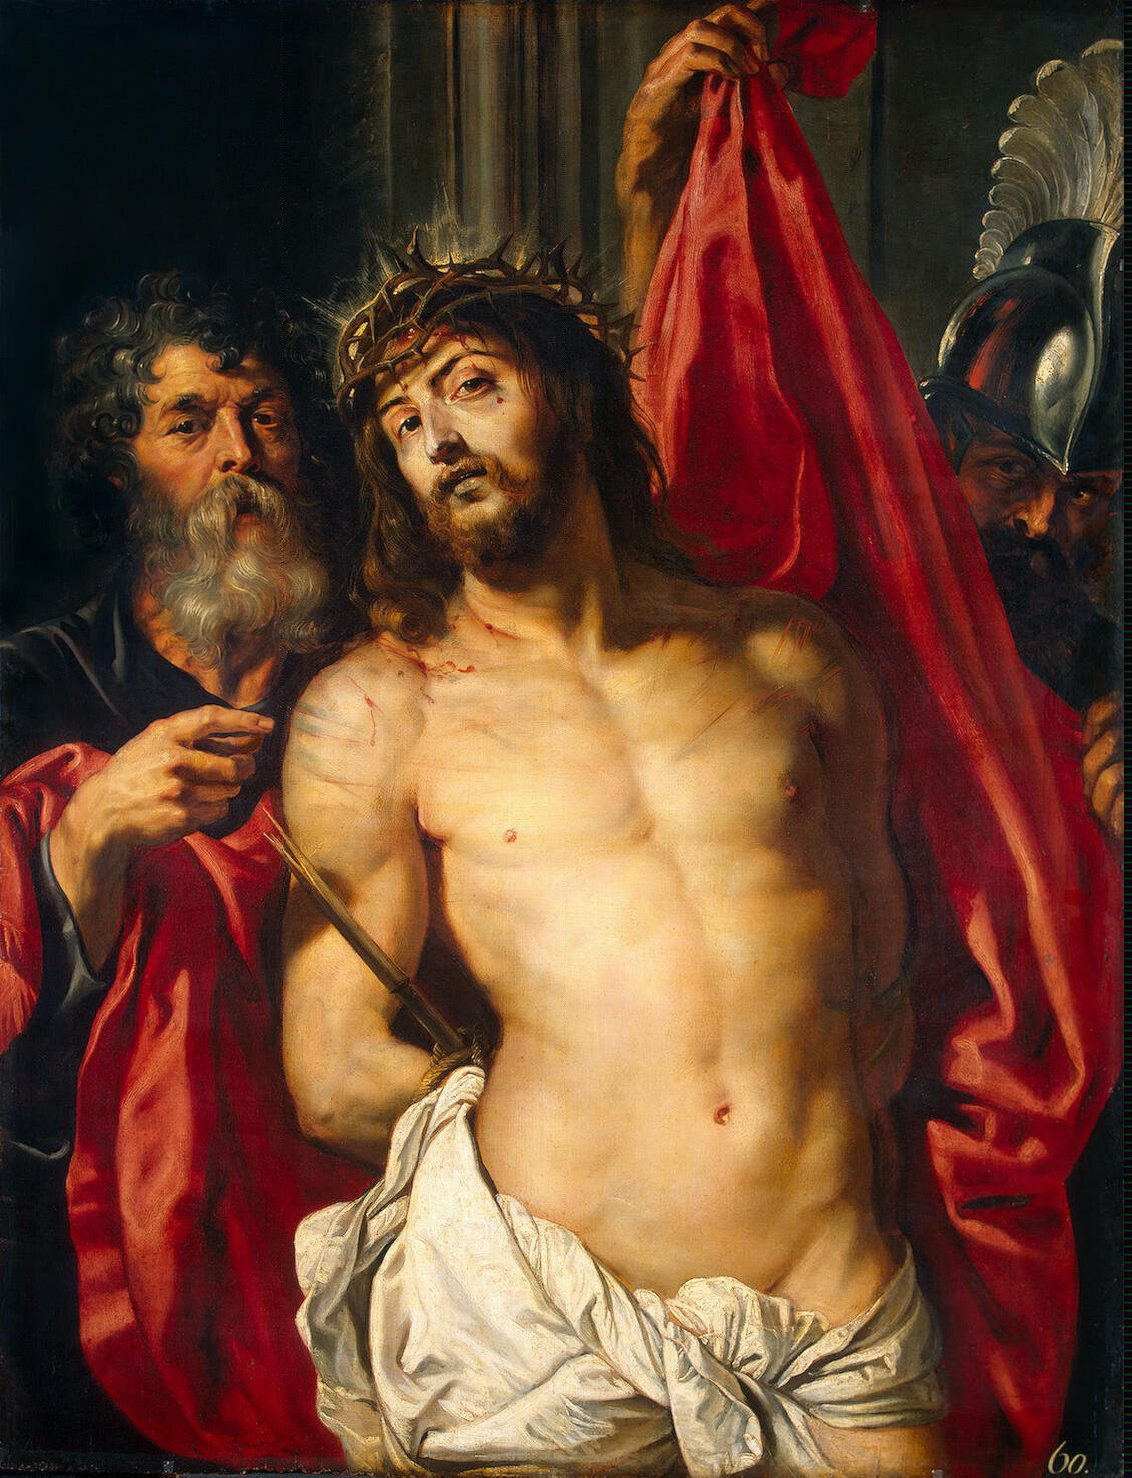 Peter Paul Rubens Ecce Homo, No later than 1612, Set State Hermitage Museum, St. Petersburg